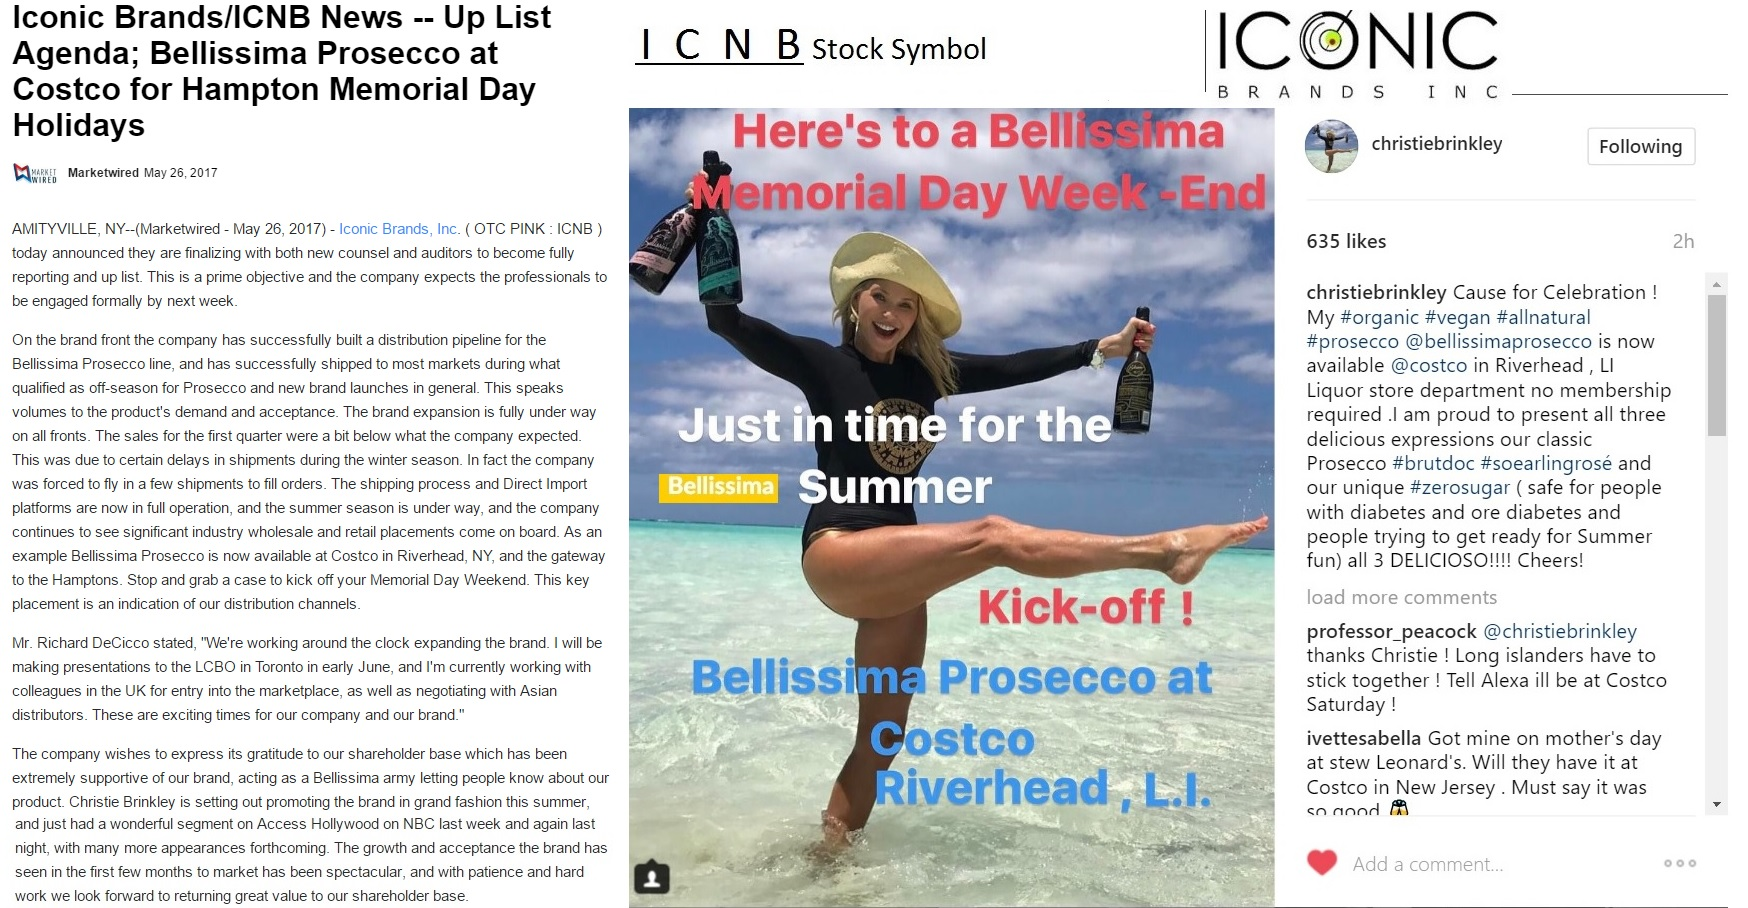 Bbs stock haven the power of christie brinkley marketing icnbs the sparkling christie brinkley on cbs sunday morning geenschuldenfo Images